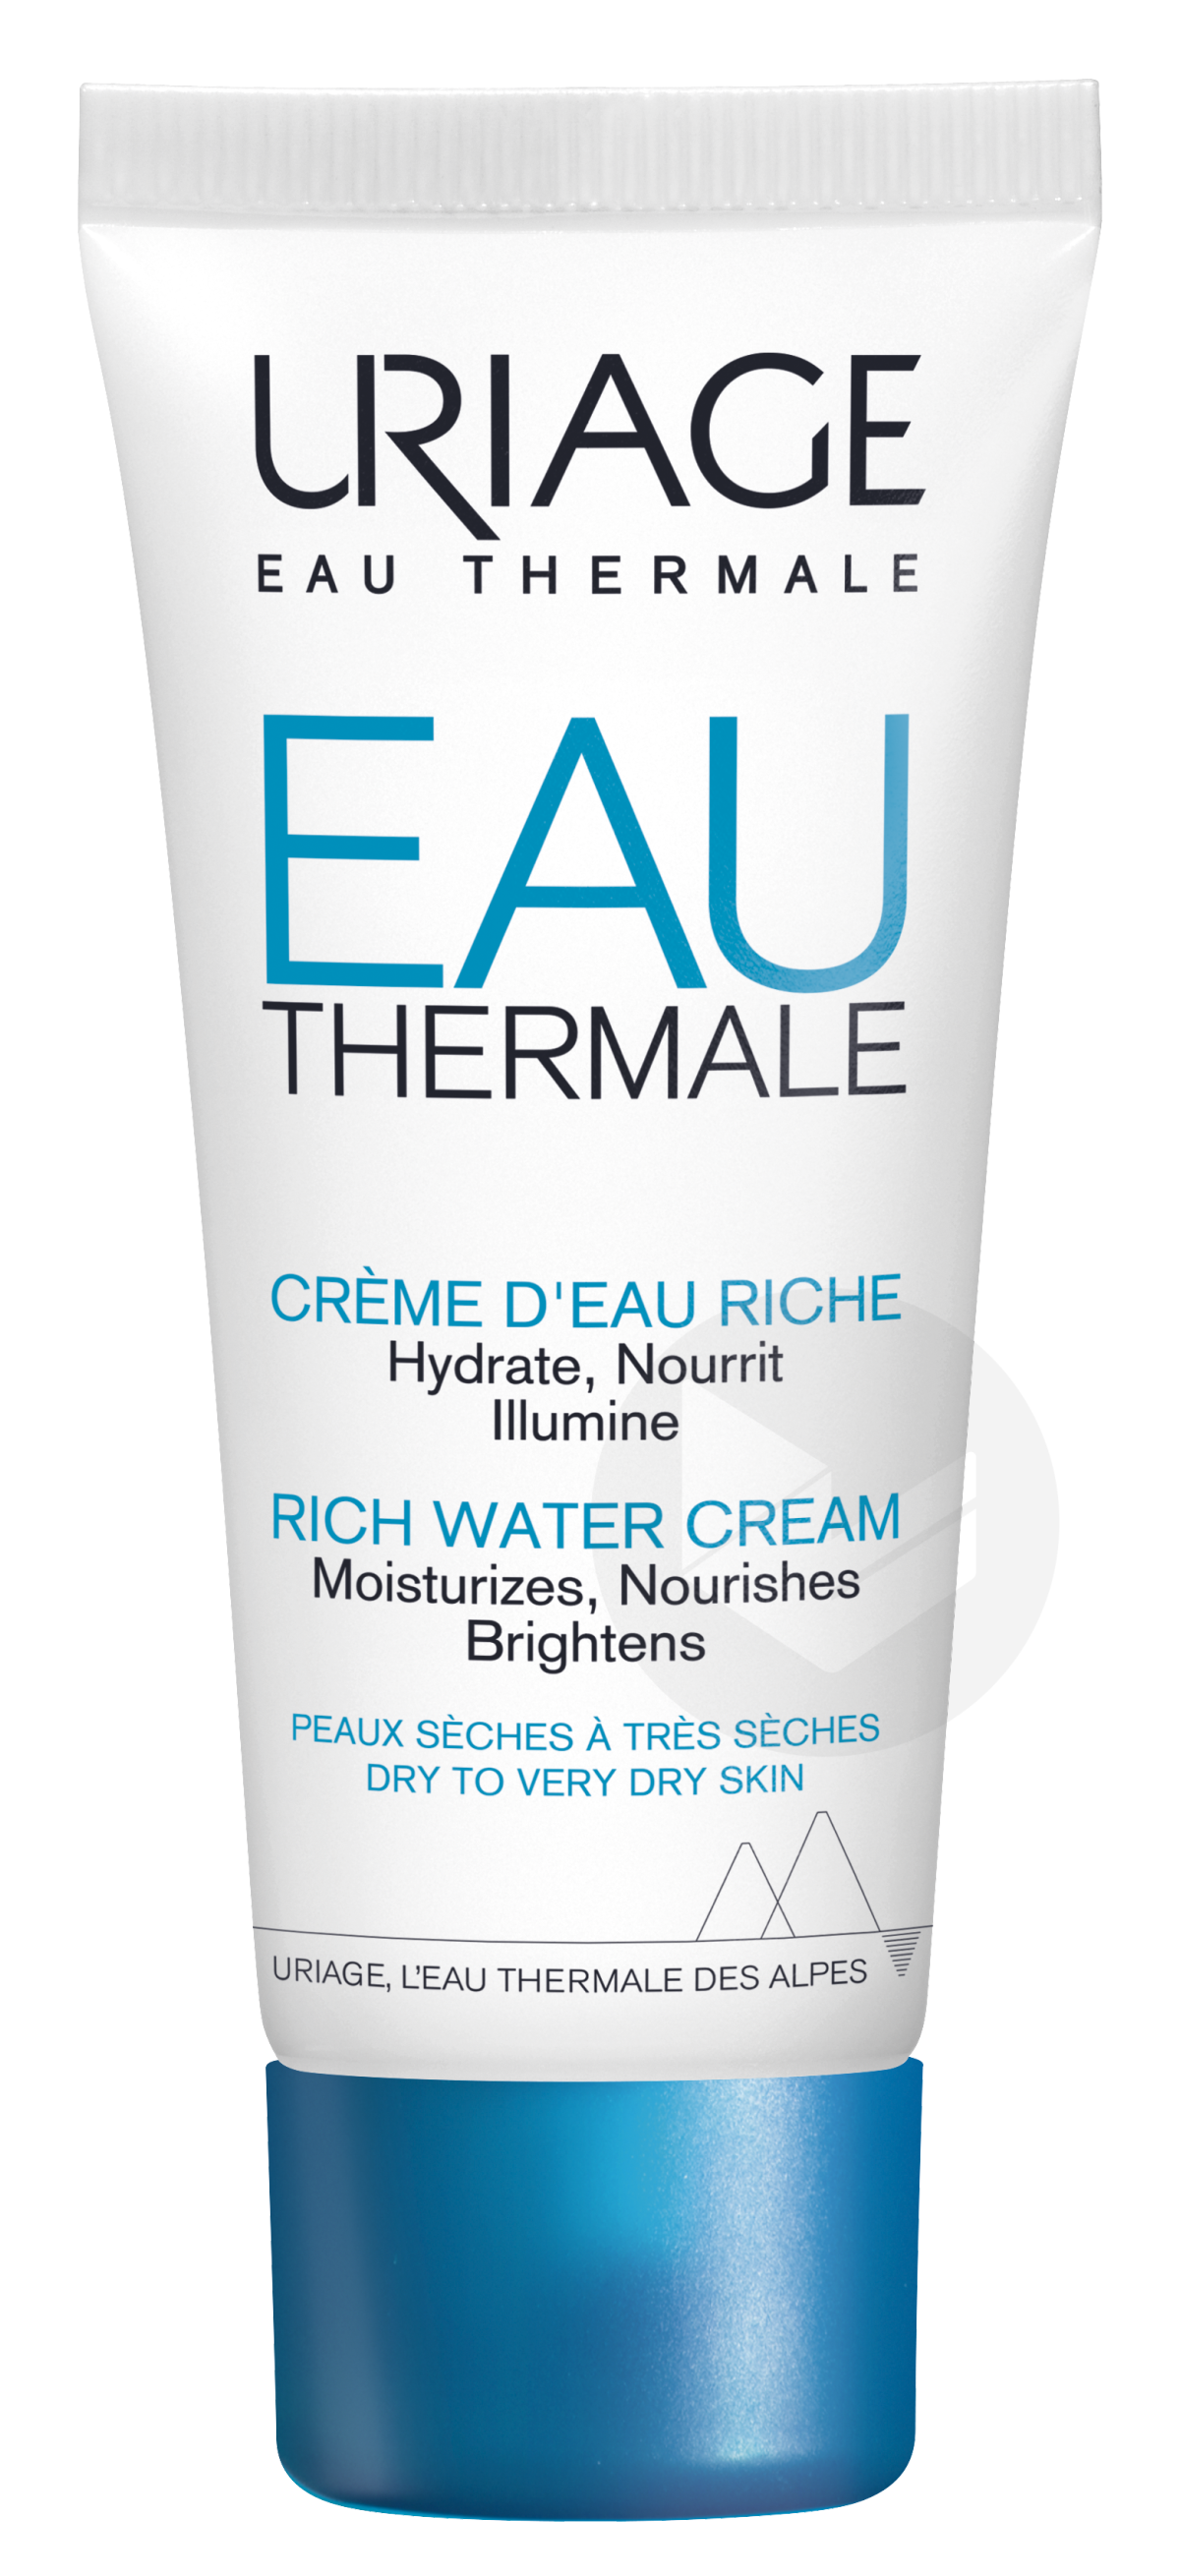 Eau Thermale Creme Deau Riche 40 Ml